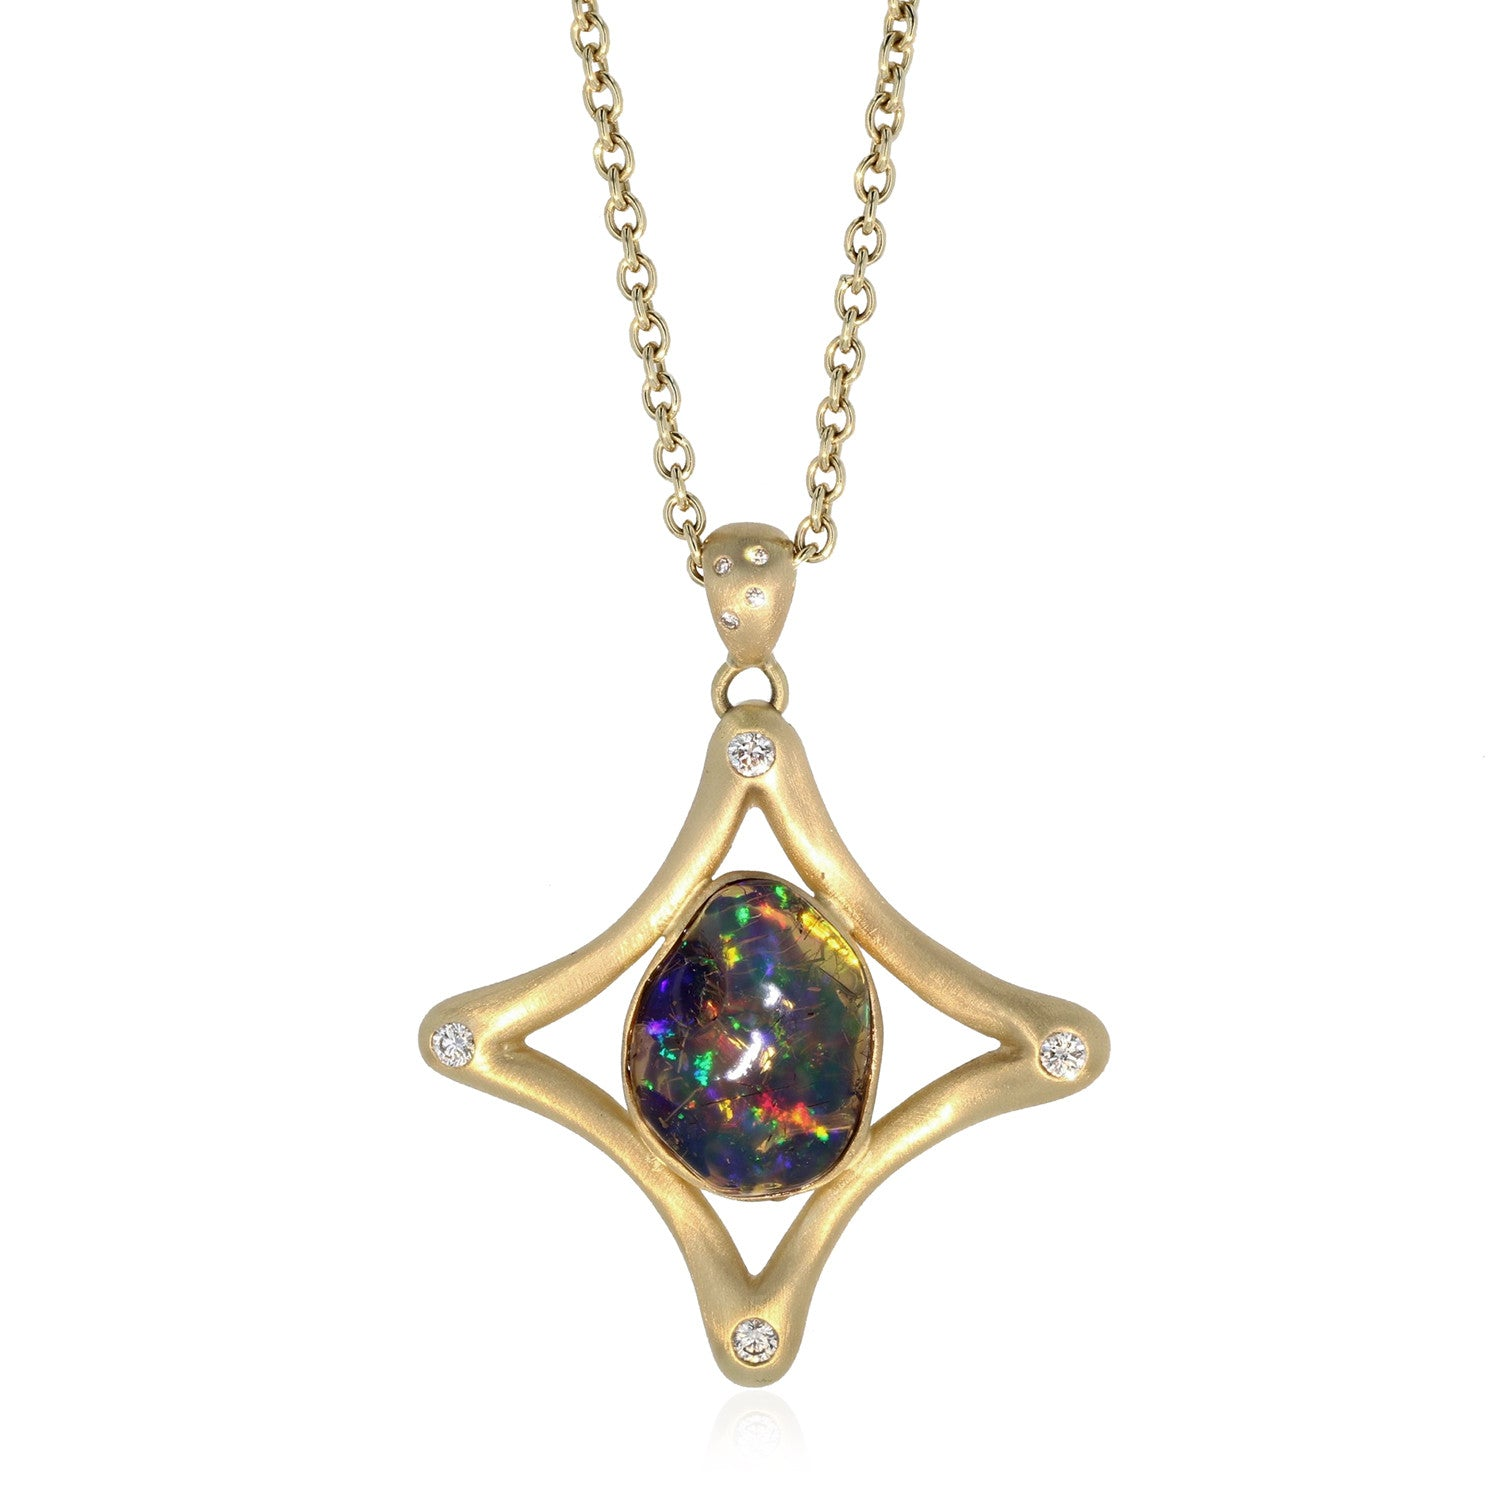 Etoile Pendant with Water Opal - 18K Yellow Gold